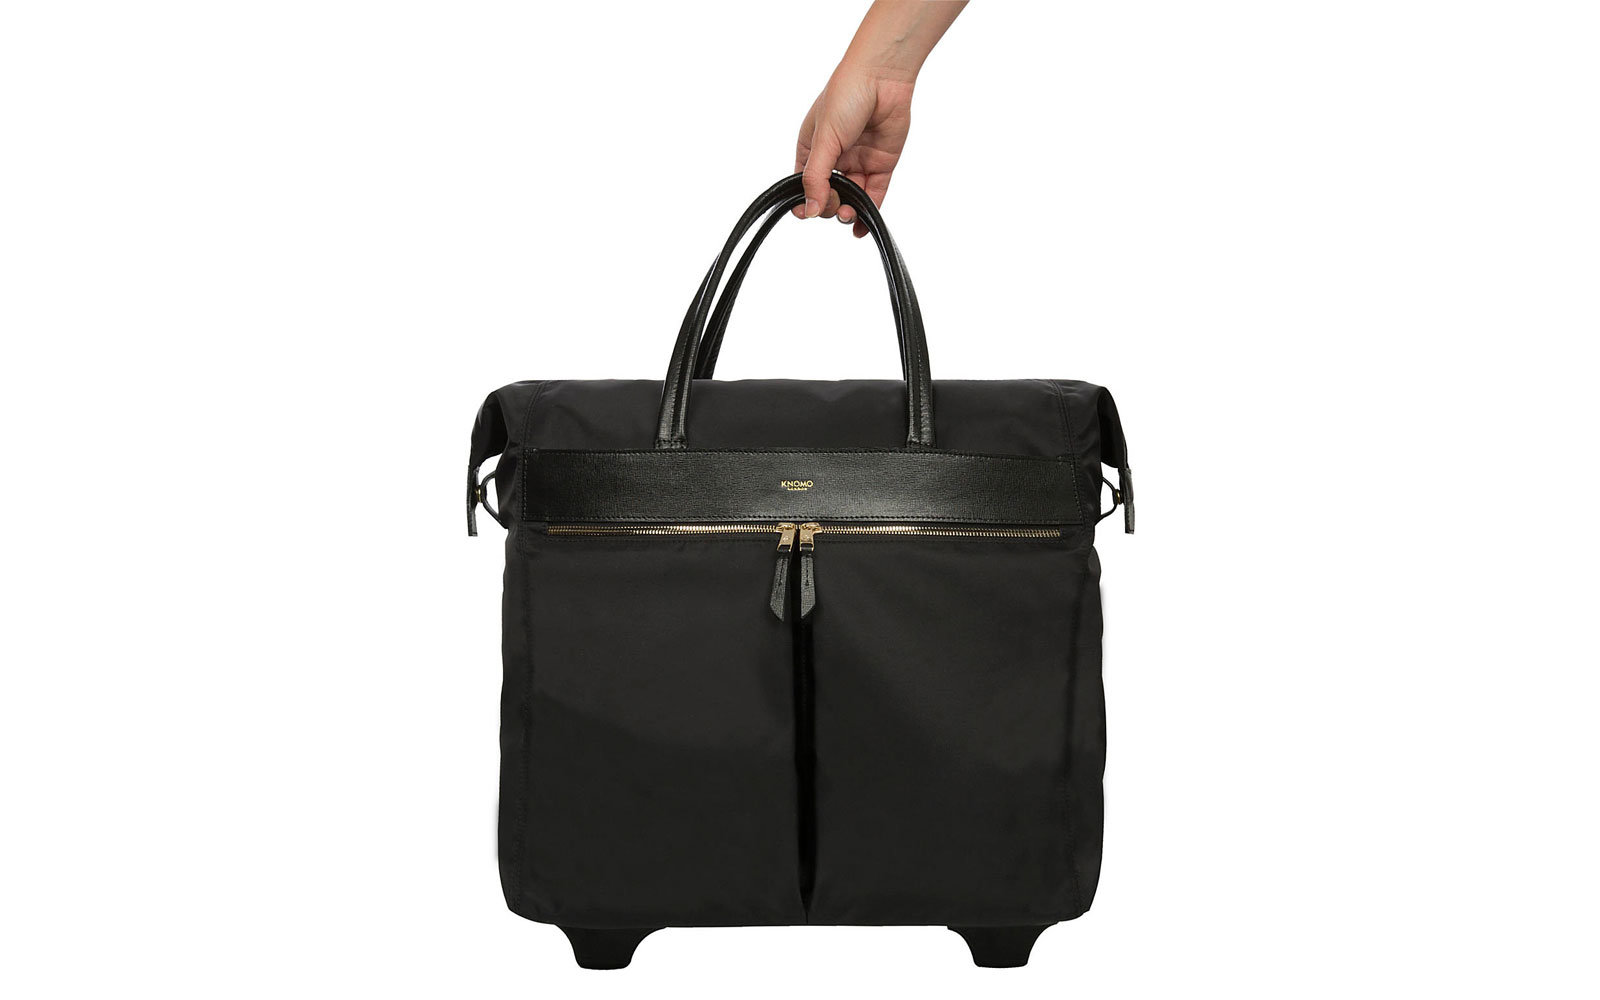 Black Nylon and Leather Tote